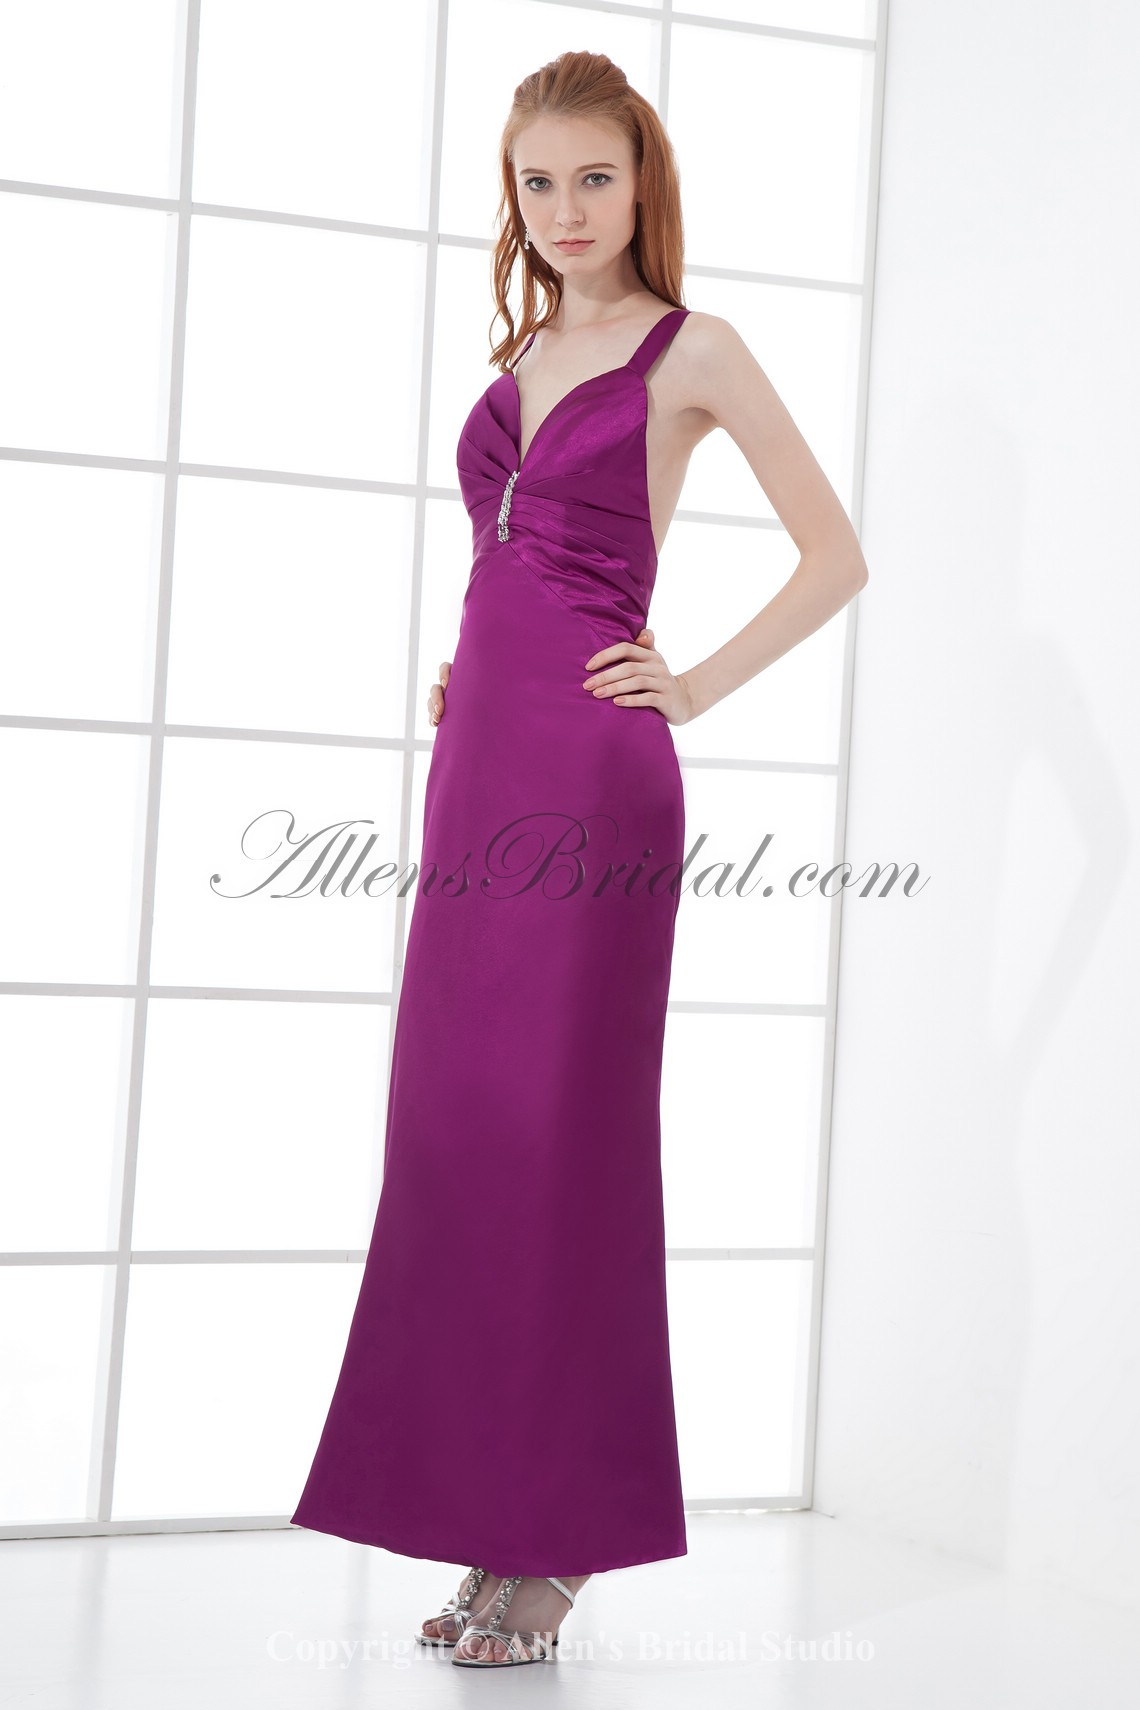 /68-540/satin-straps-sheath-ankle-length-sequins-prom-dress.jpg